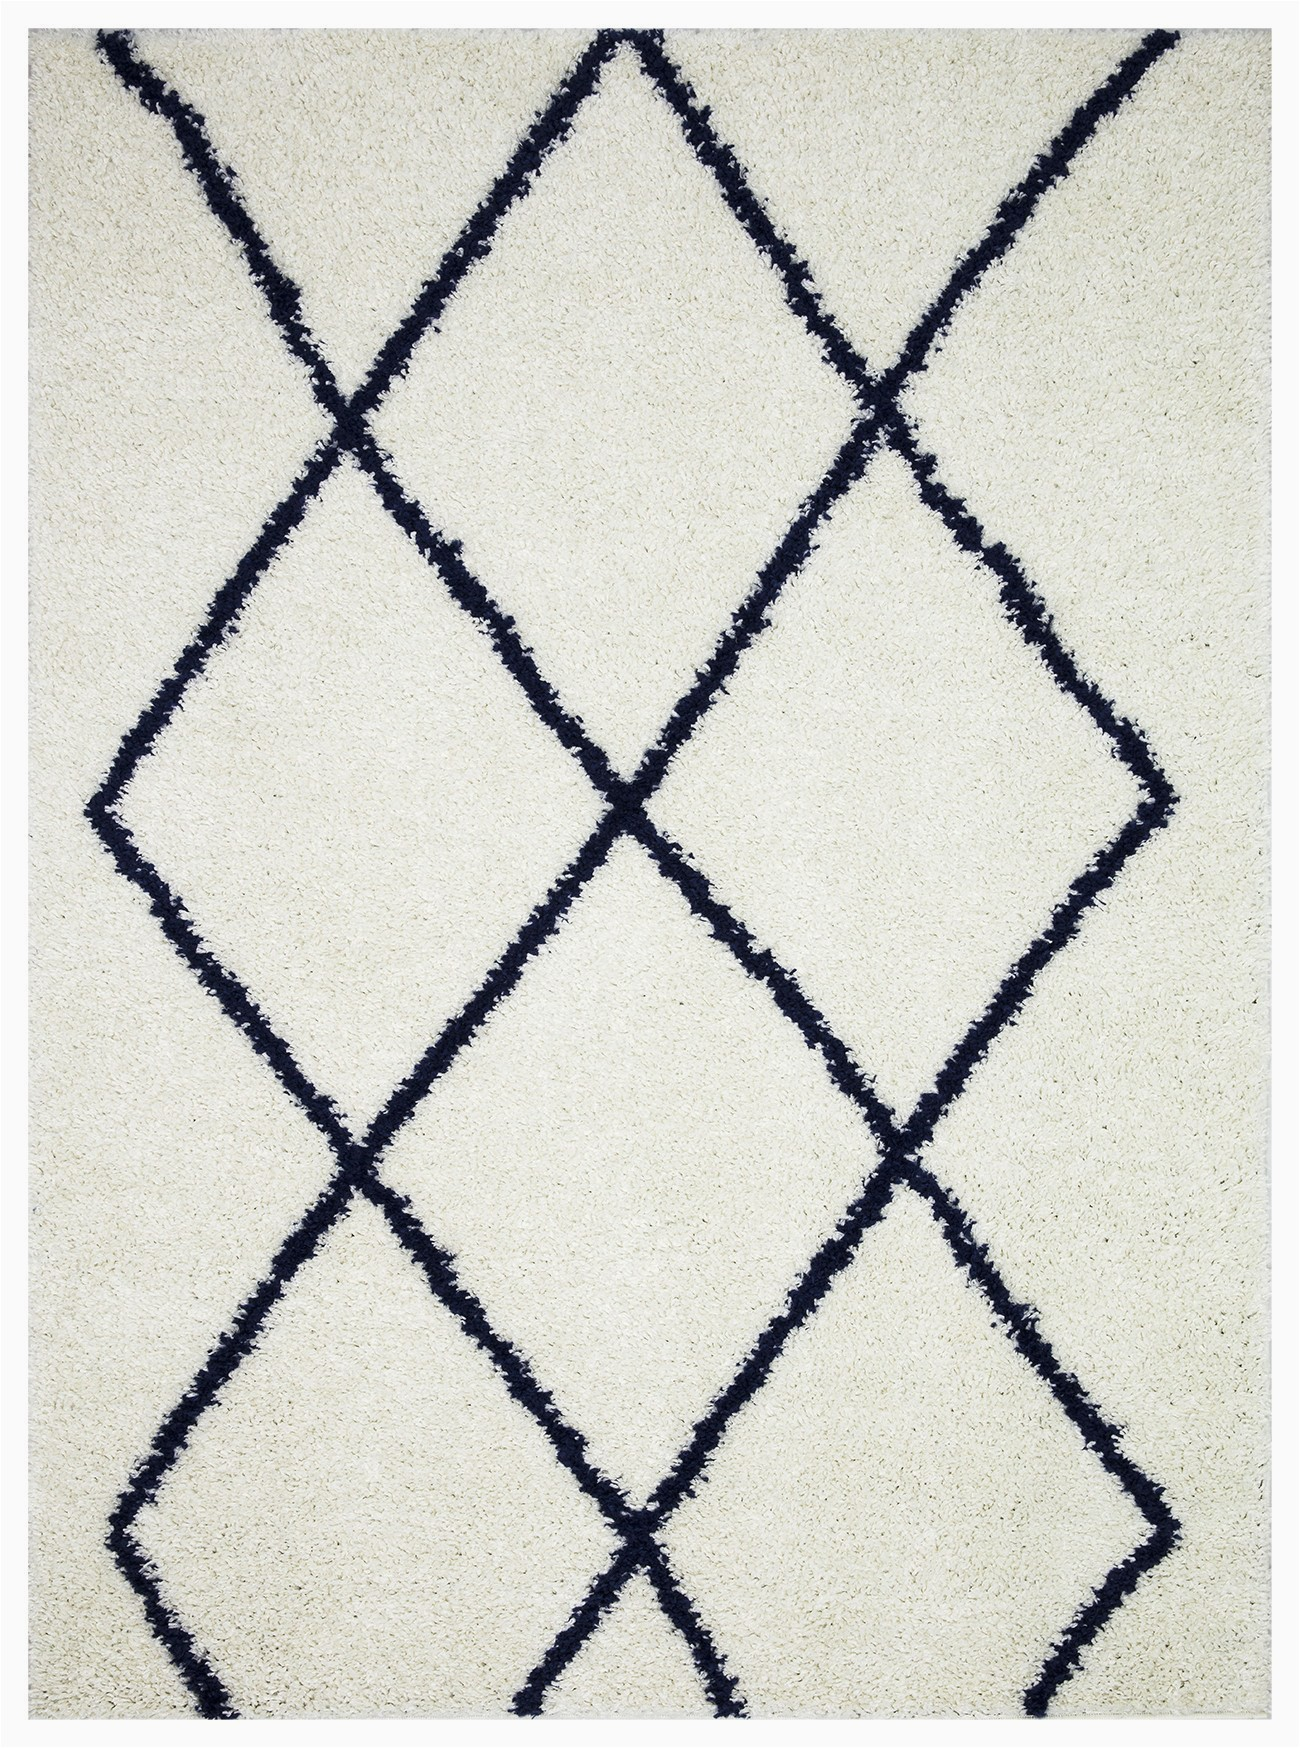 vienna collection modern geometric shaggy area rug g2927 white dark blue